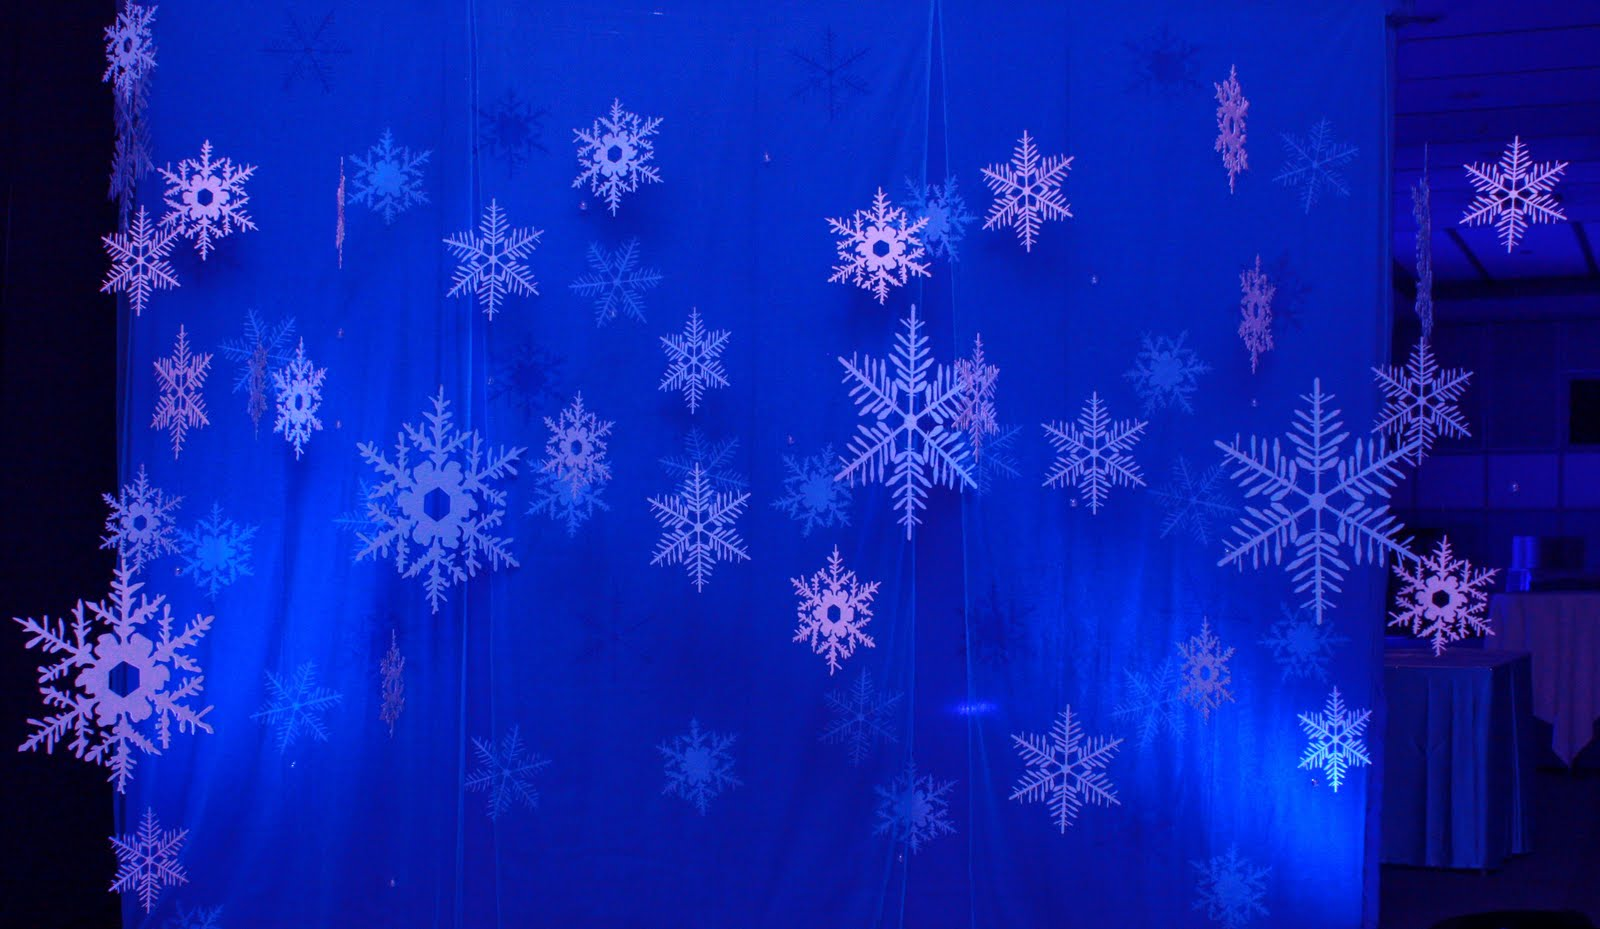 Snow Flakes in Blue Curtain